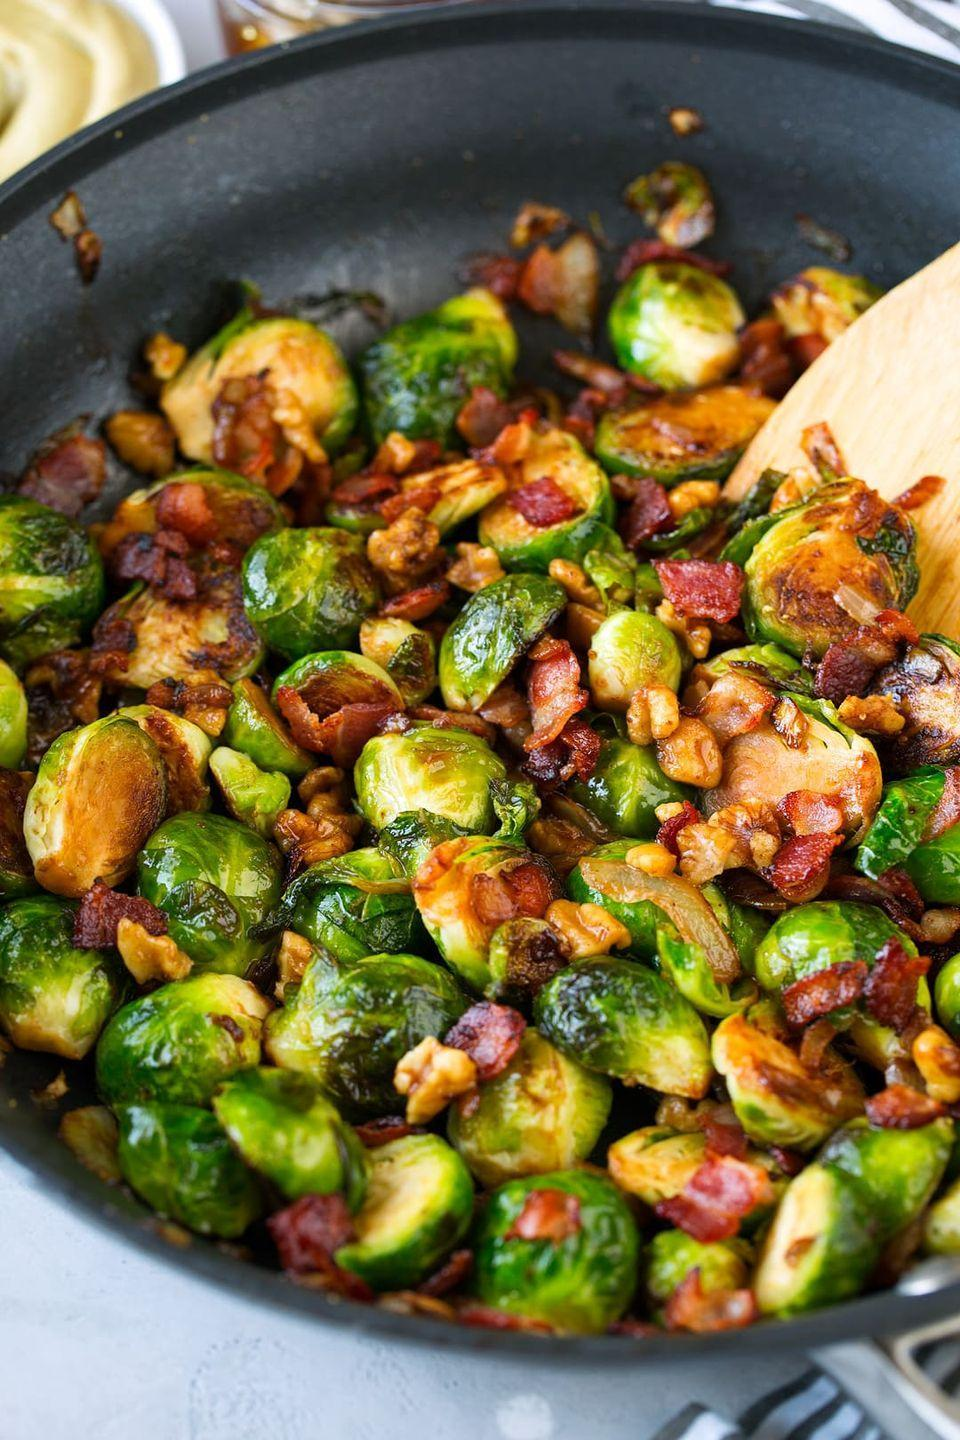 """<p>Some things are just better together: peanut butter and jelly, salt and pepper, and Brussels sprouts and bacon! A honey-Dijon mustard sauce adds some extra sweetness to the combo.</p><p><strong>Get the recipe from <a href=""""https://www.cookingclassy.com/sauteed-brussels-sprouts-with-bacon-onions-and-walnuts/"""" rel=""""nofollow noopener"""" target=""""_blank"""" data-ylk=""""slk:Cooking Classy"""" class=""""link rapid-noclick-resp"""">Cooking Classy</a>.</strong></p>"""